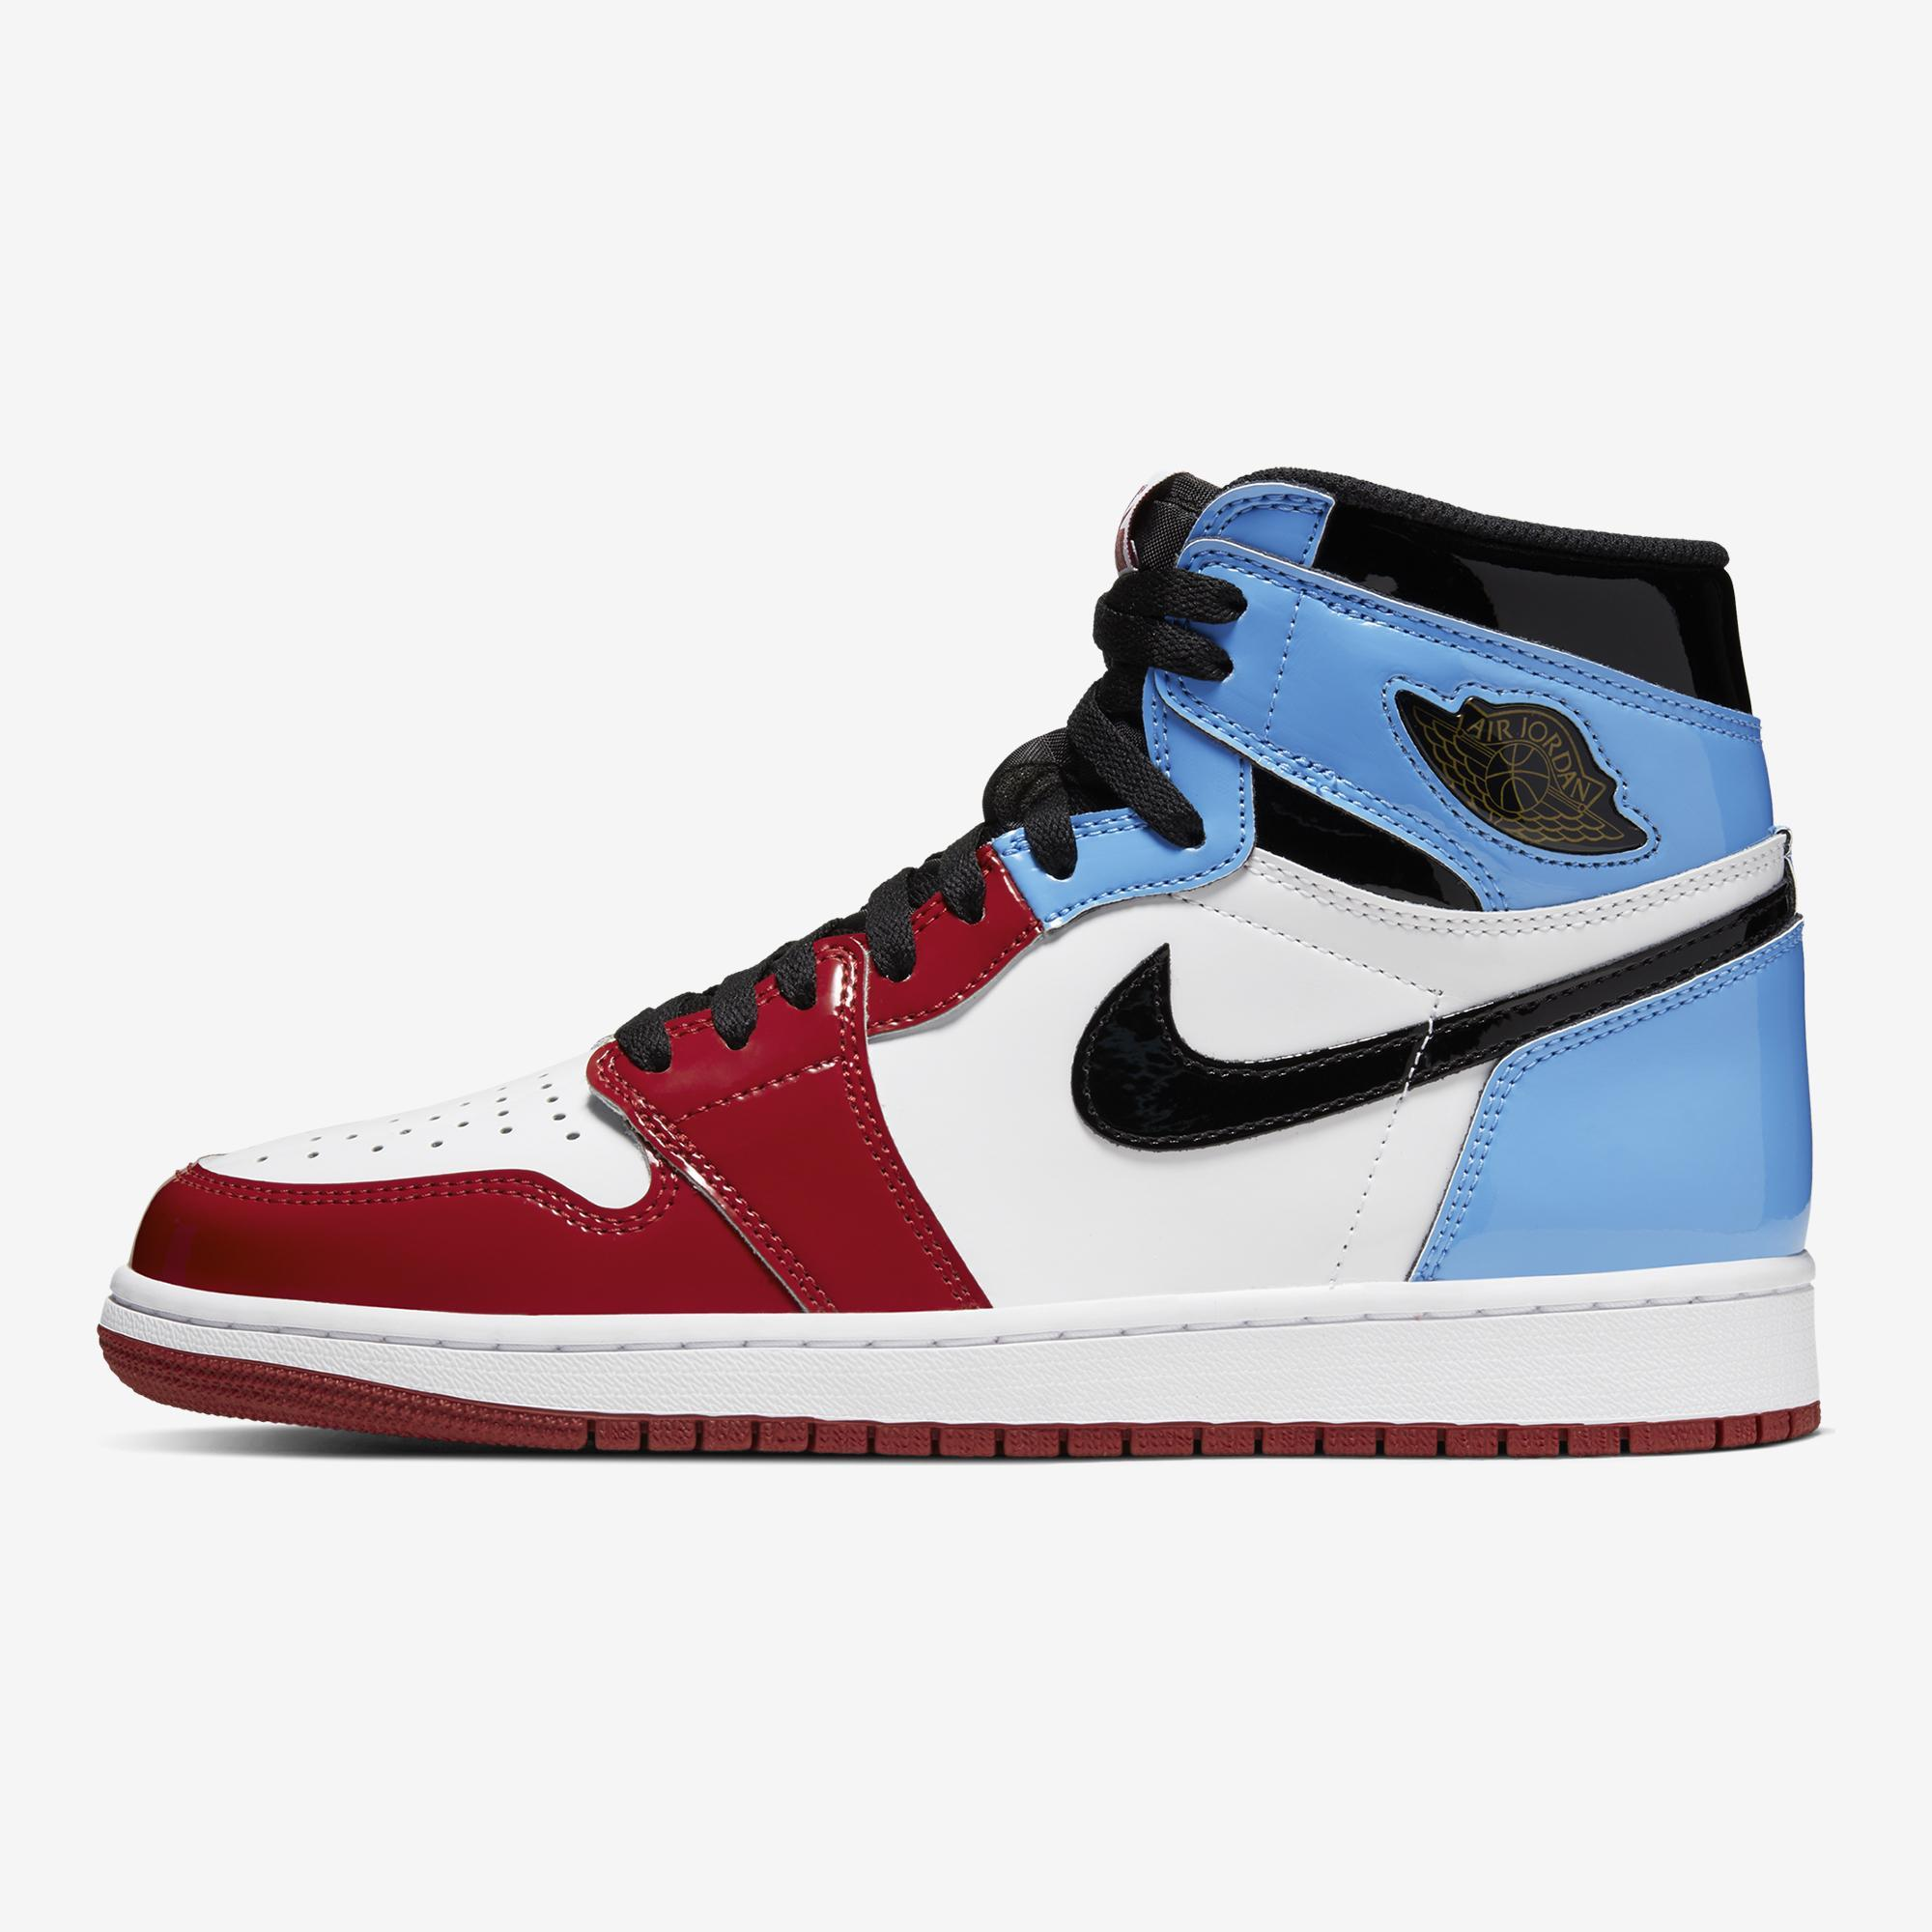 Men's Air Jordan 1 Retro High Og Fearless